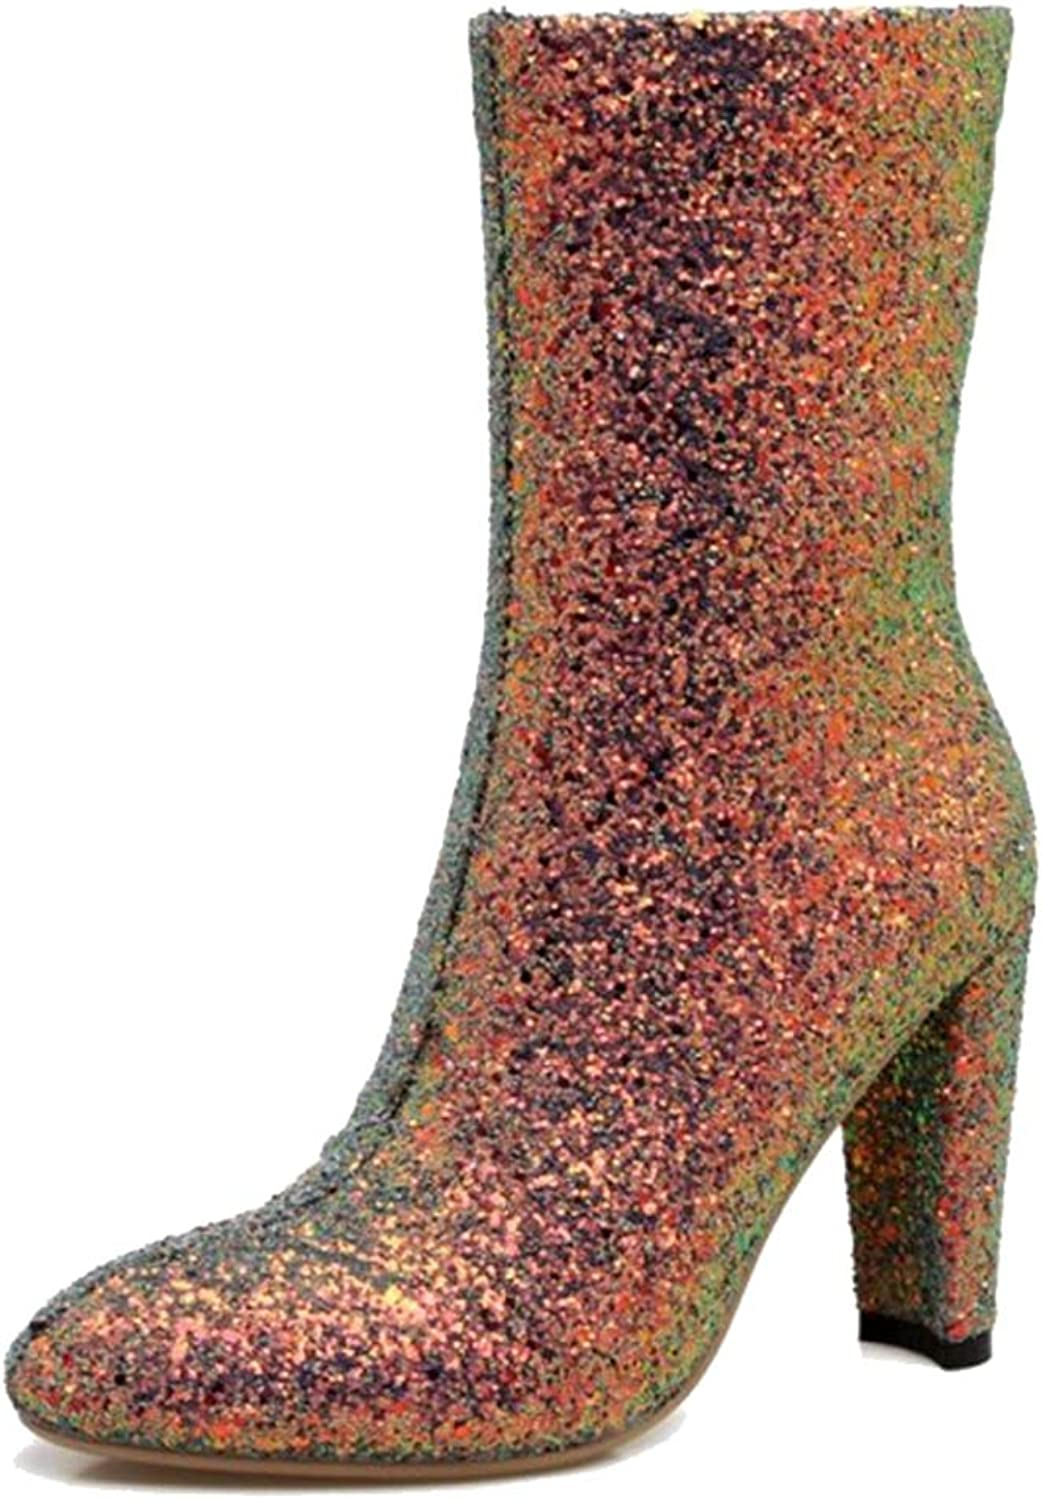 Onewus Women Bling Materail Dressy Mid-Calf Boots